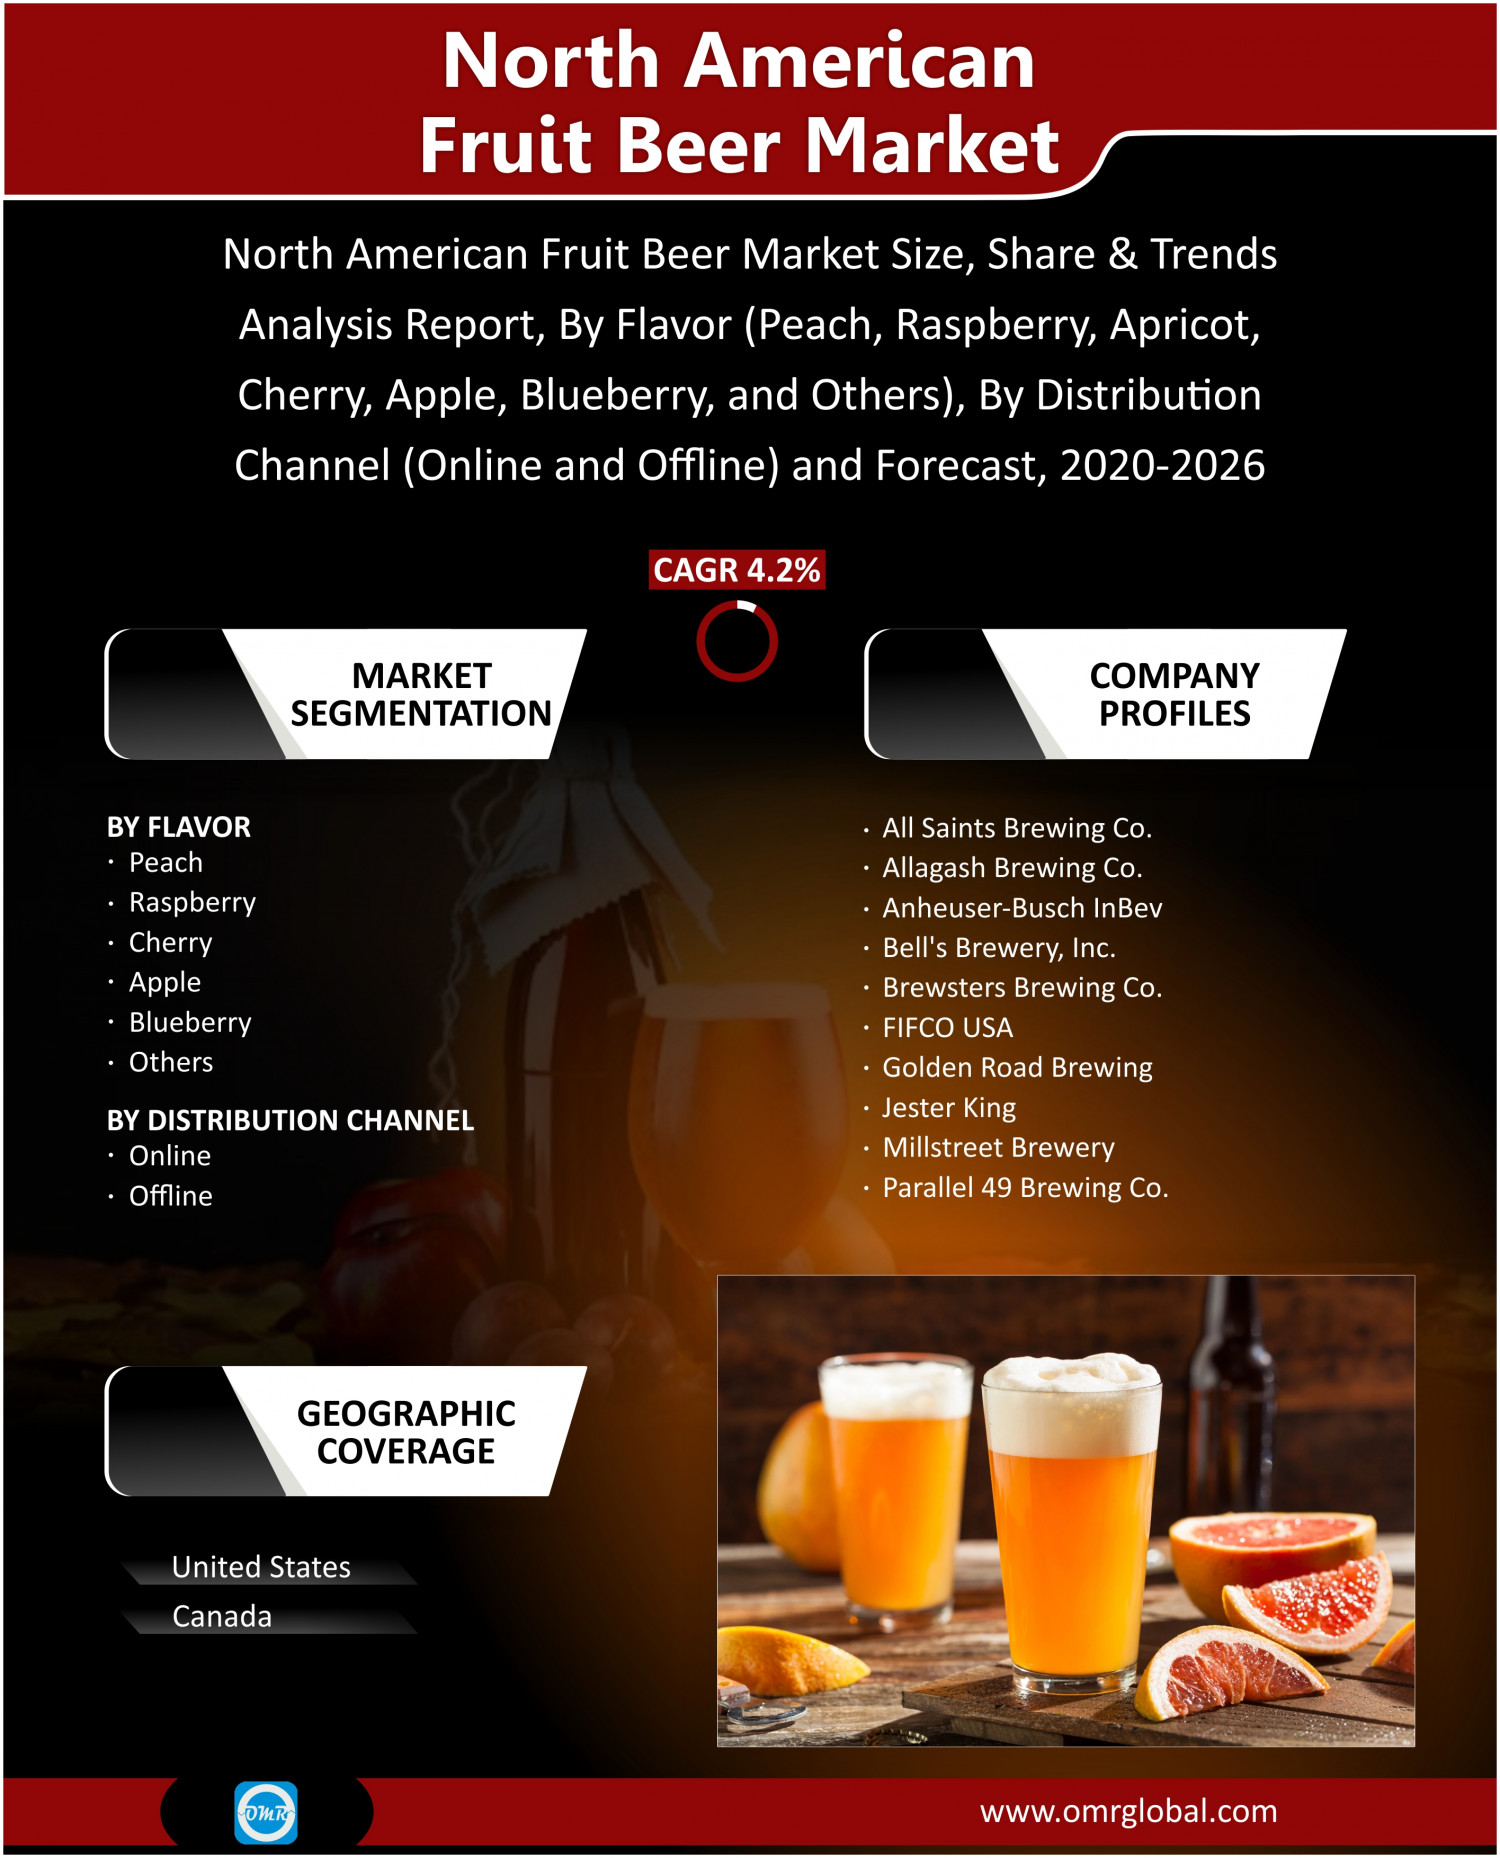 North American Fruit Beer Market Share, Trends, Size, Research and Forecast 2020-2026 Infographic